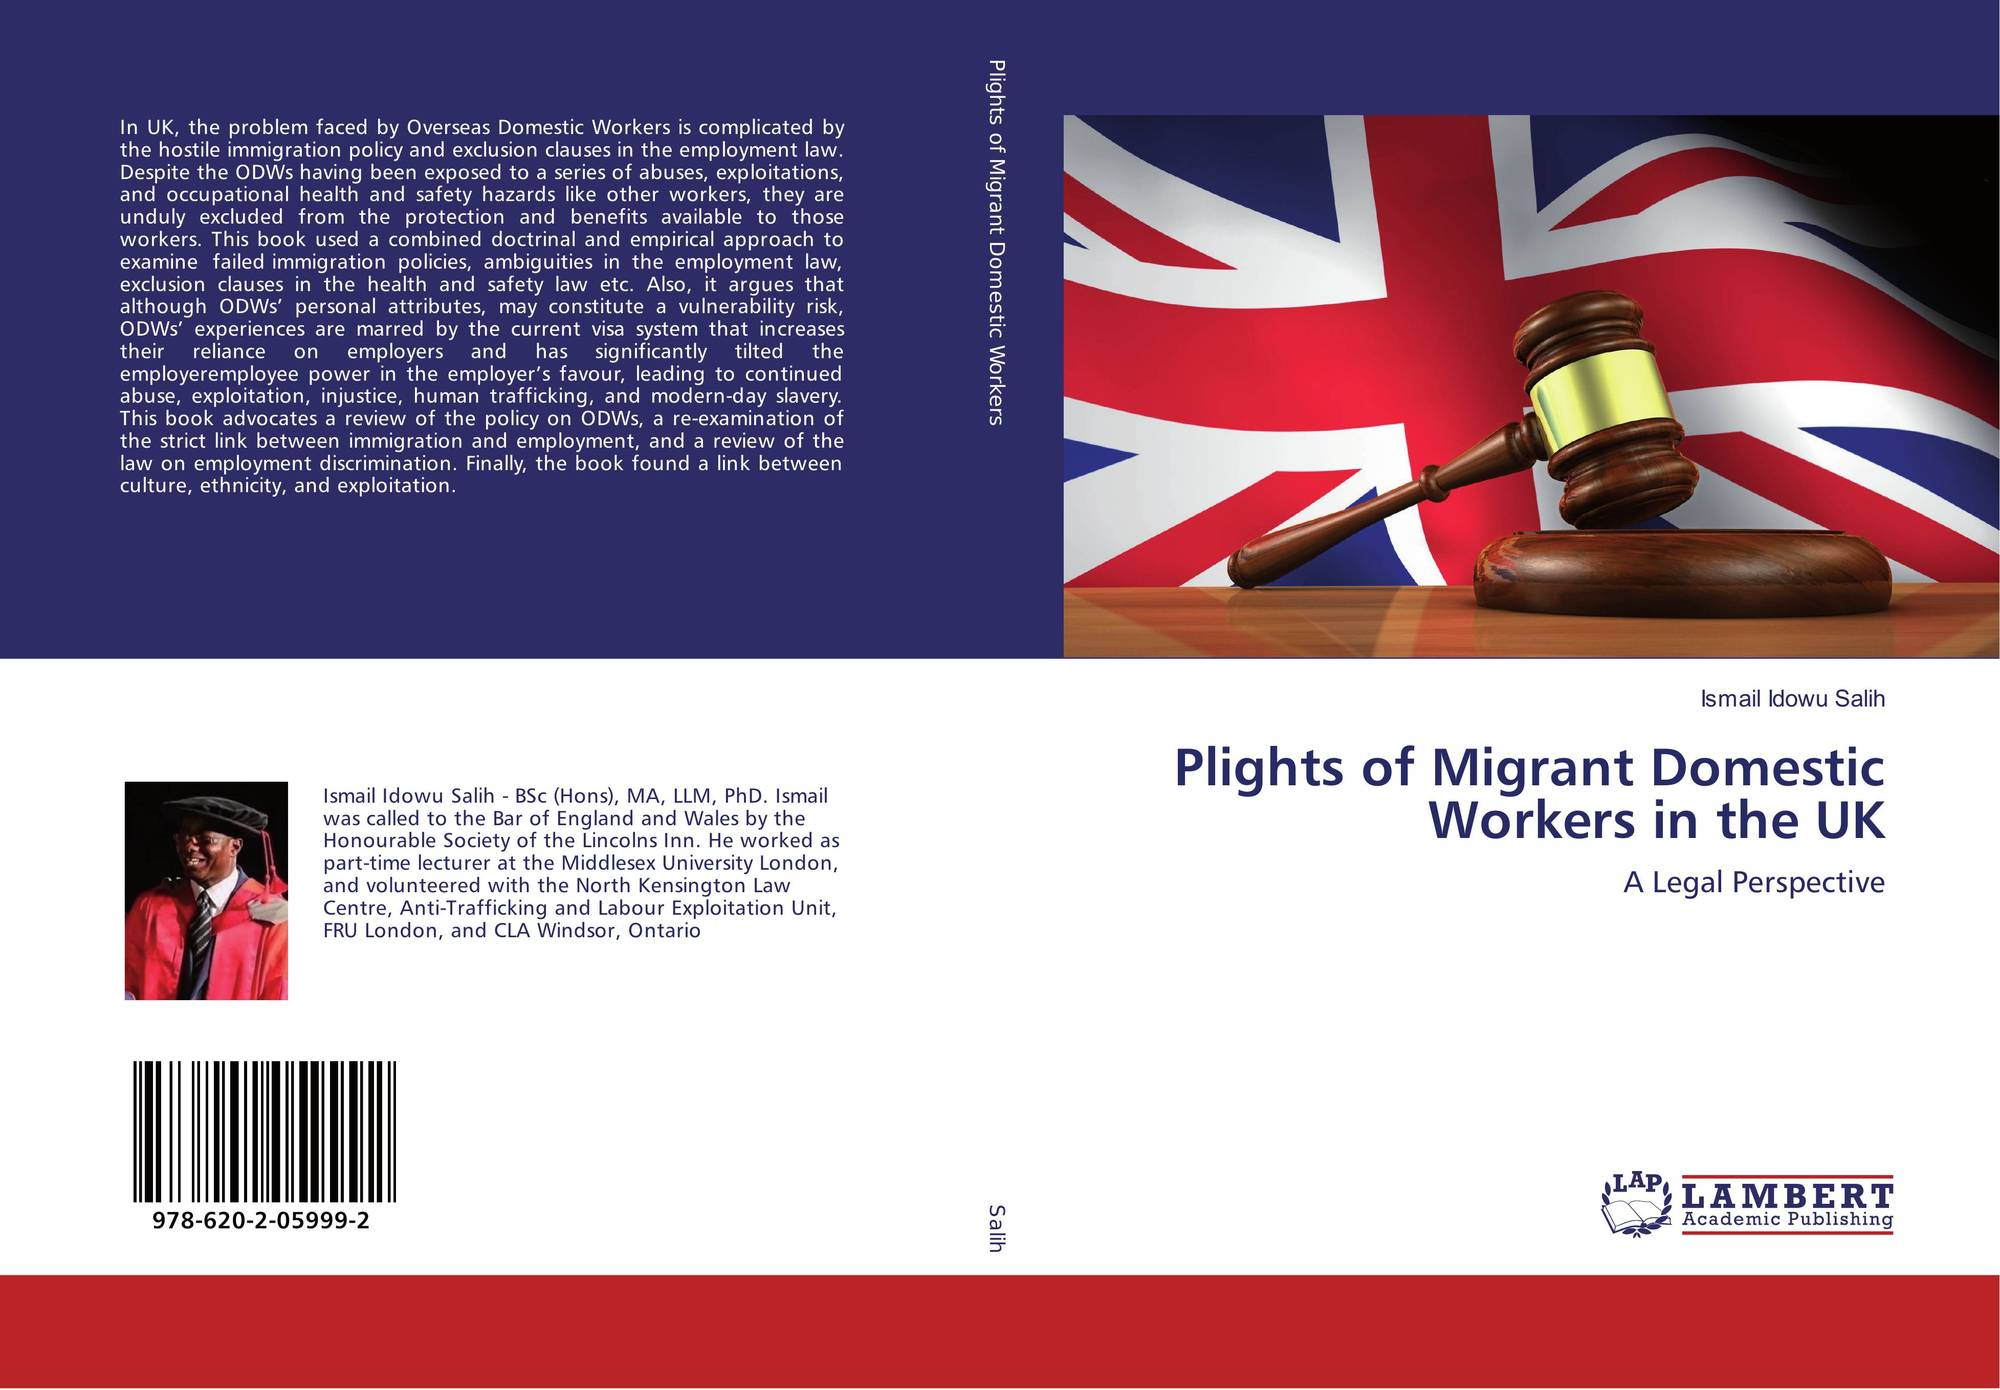 analysing abuse of migrant domestic worker social work essay Migrant worker abuse in discusses legal activity dealing with migrant domestic workers  these tomato workers work for 10 to 12 hours a day picking.